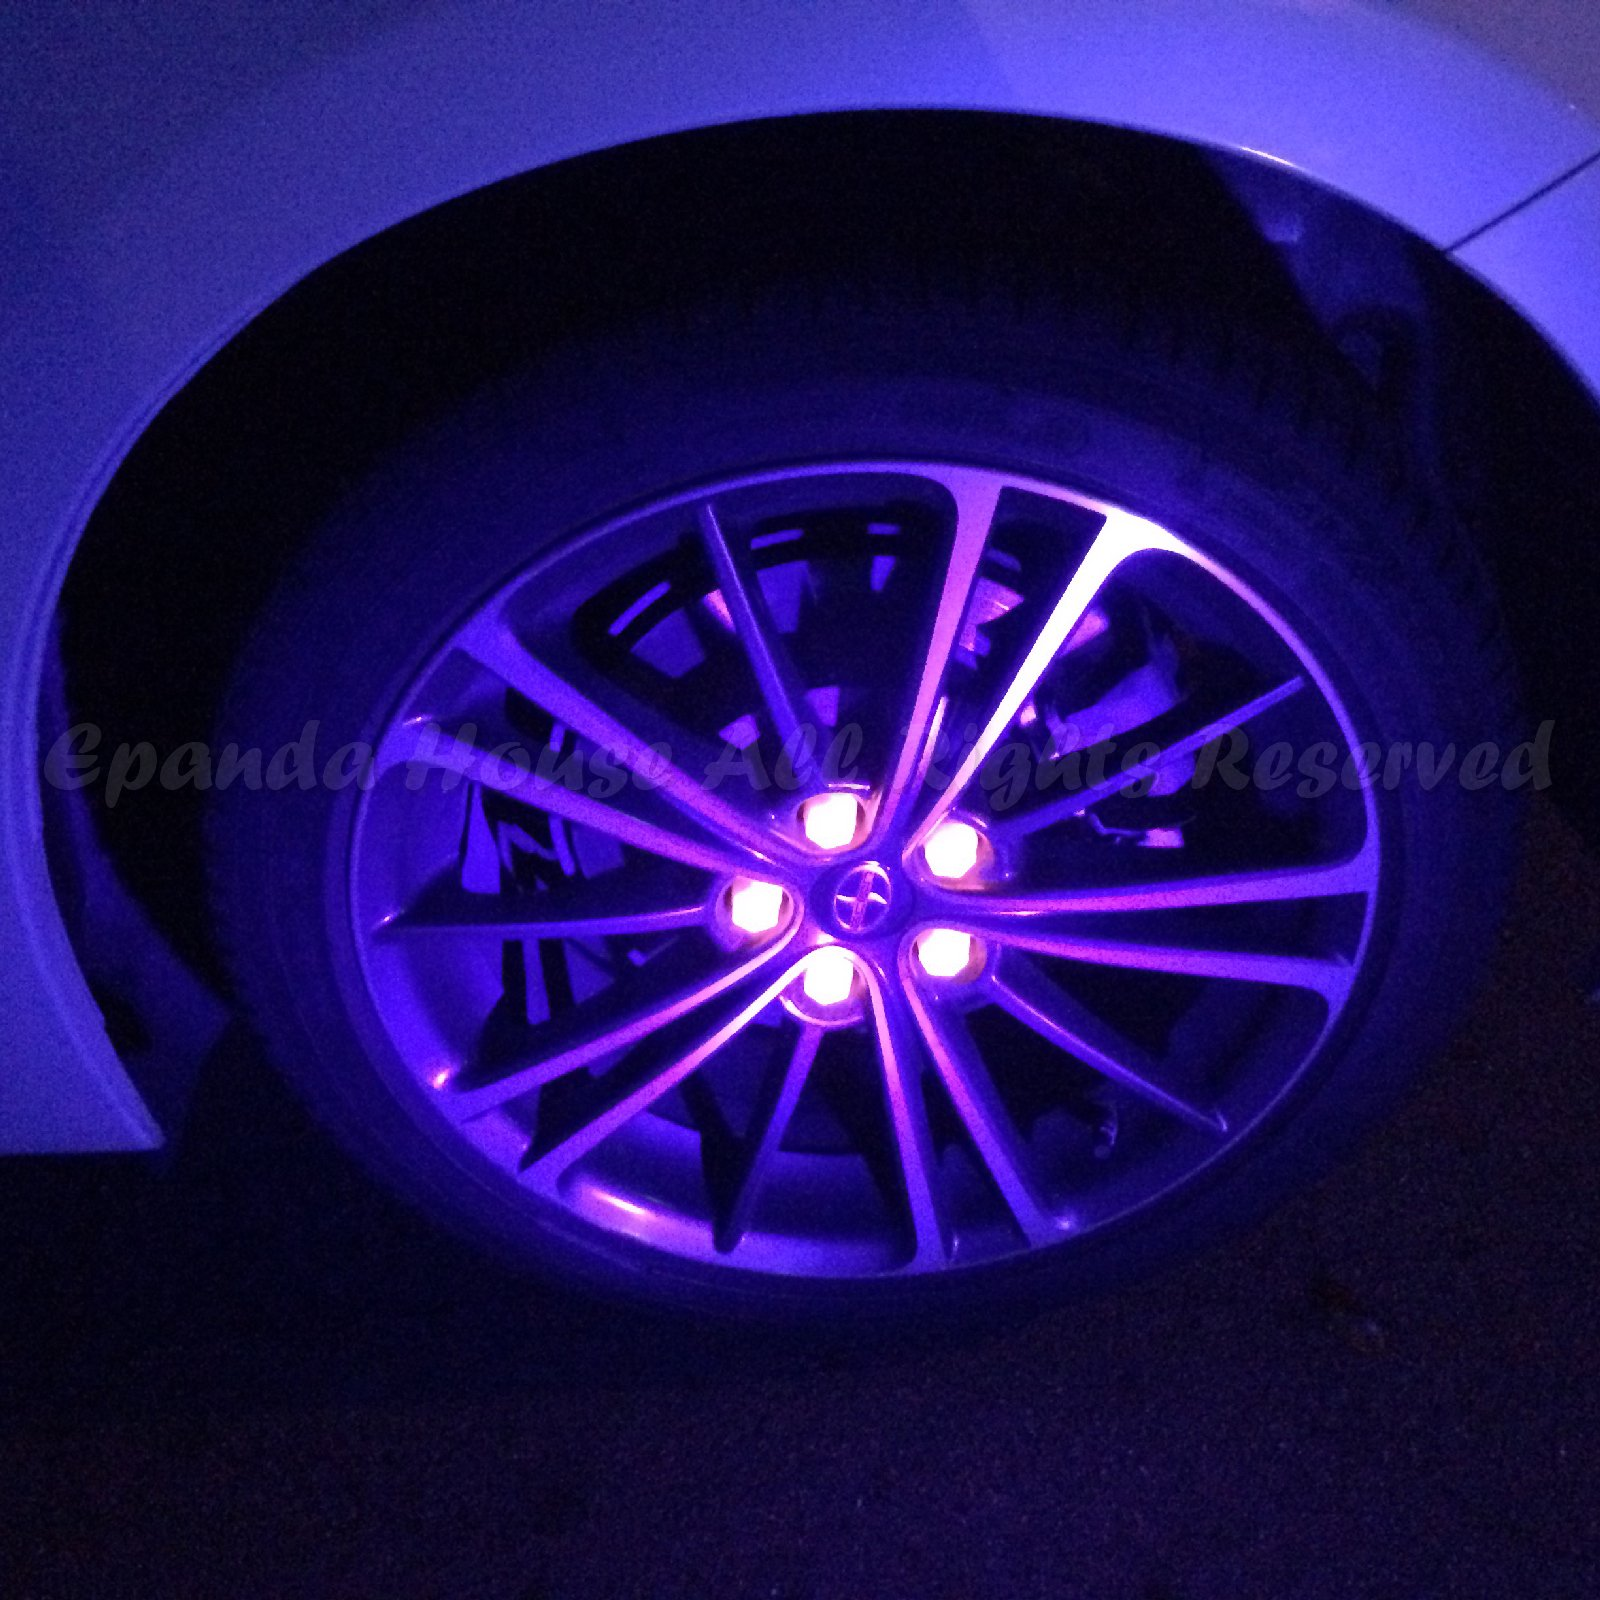 21mm 20X Glow In The Dark Blacklight Wheel Rim Lug Nuts Covers Cars/Bikes Pink by EpandaHouse (Image #6)